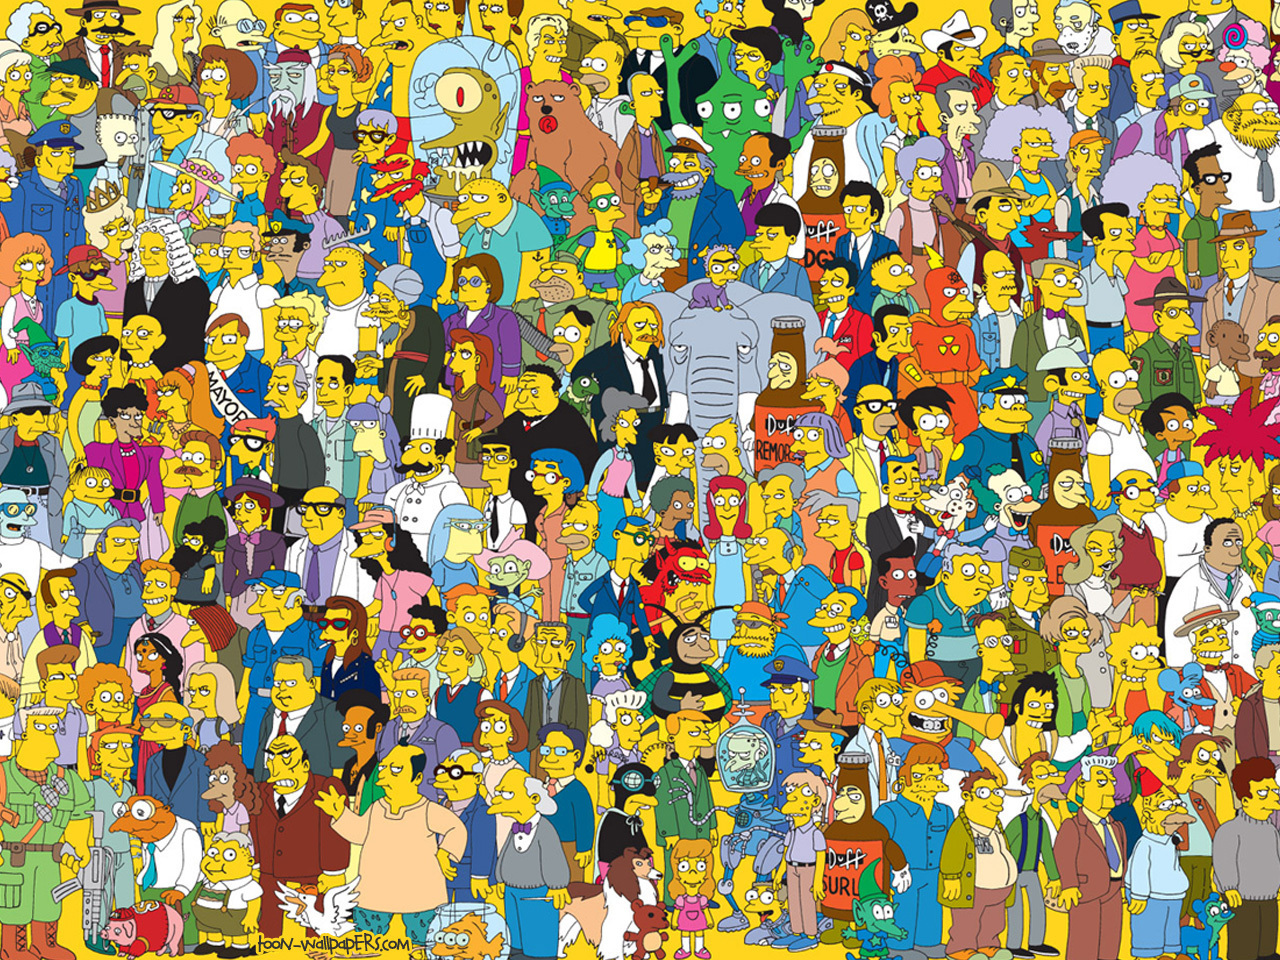 The Simpsons The Simpsons Wallpaper 6344993 1280x960